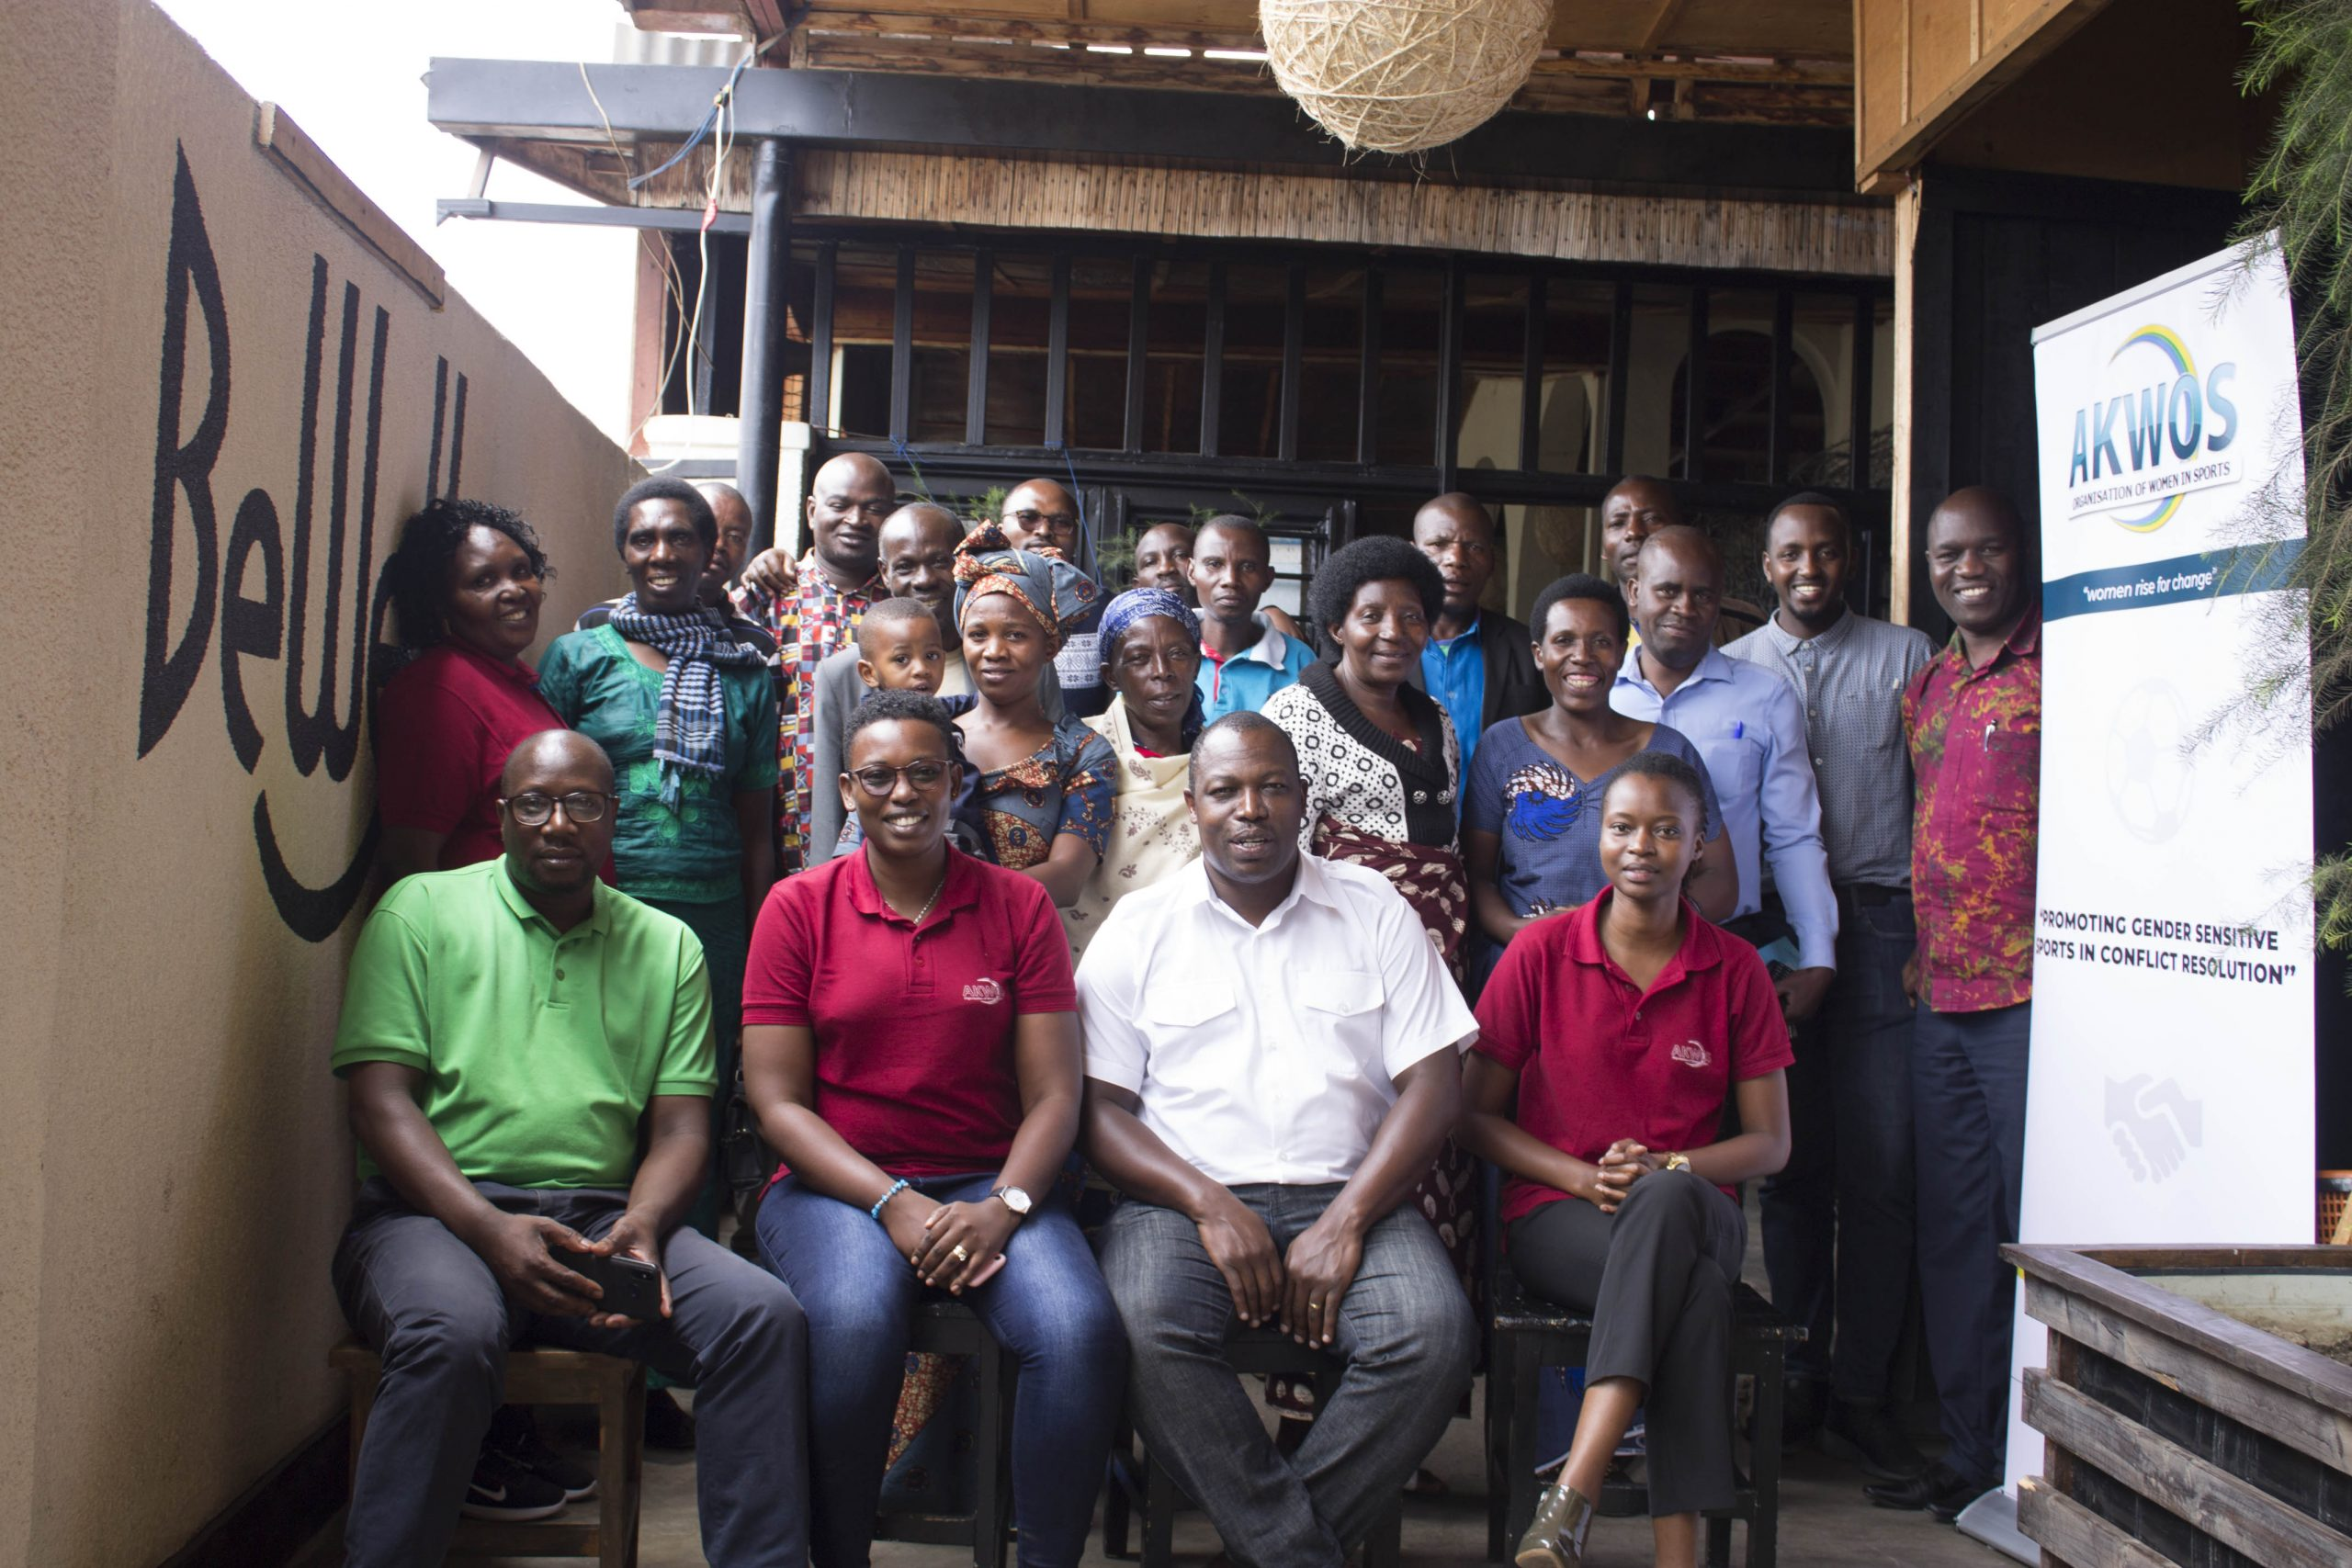 PROMOTING GENDER-SENSITIVE SPORTS IN CONFLICT RESOLUTION – STAKEHOLDERS MEETING 2020